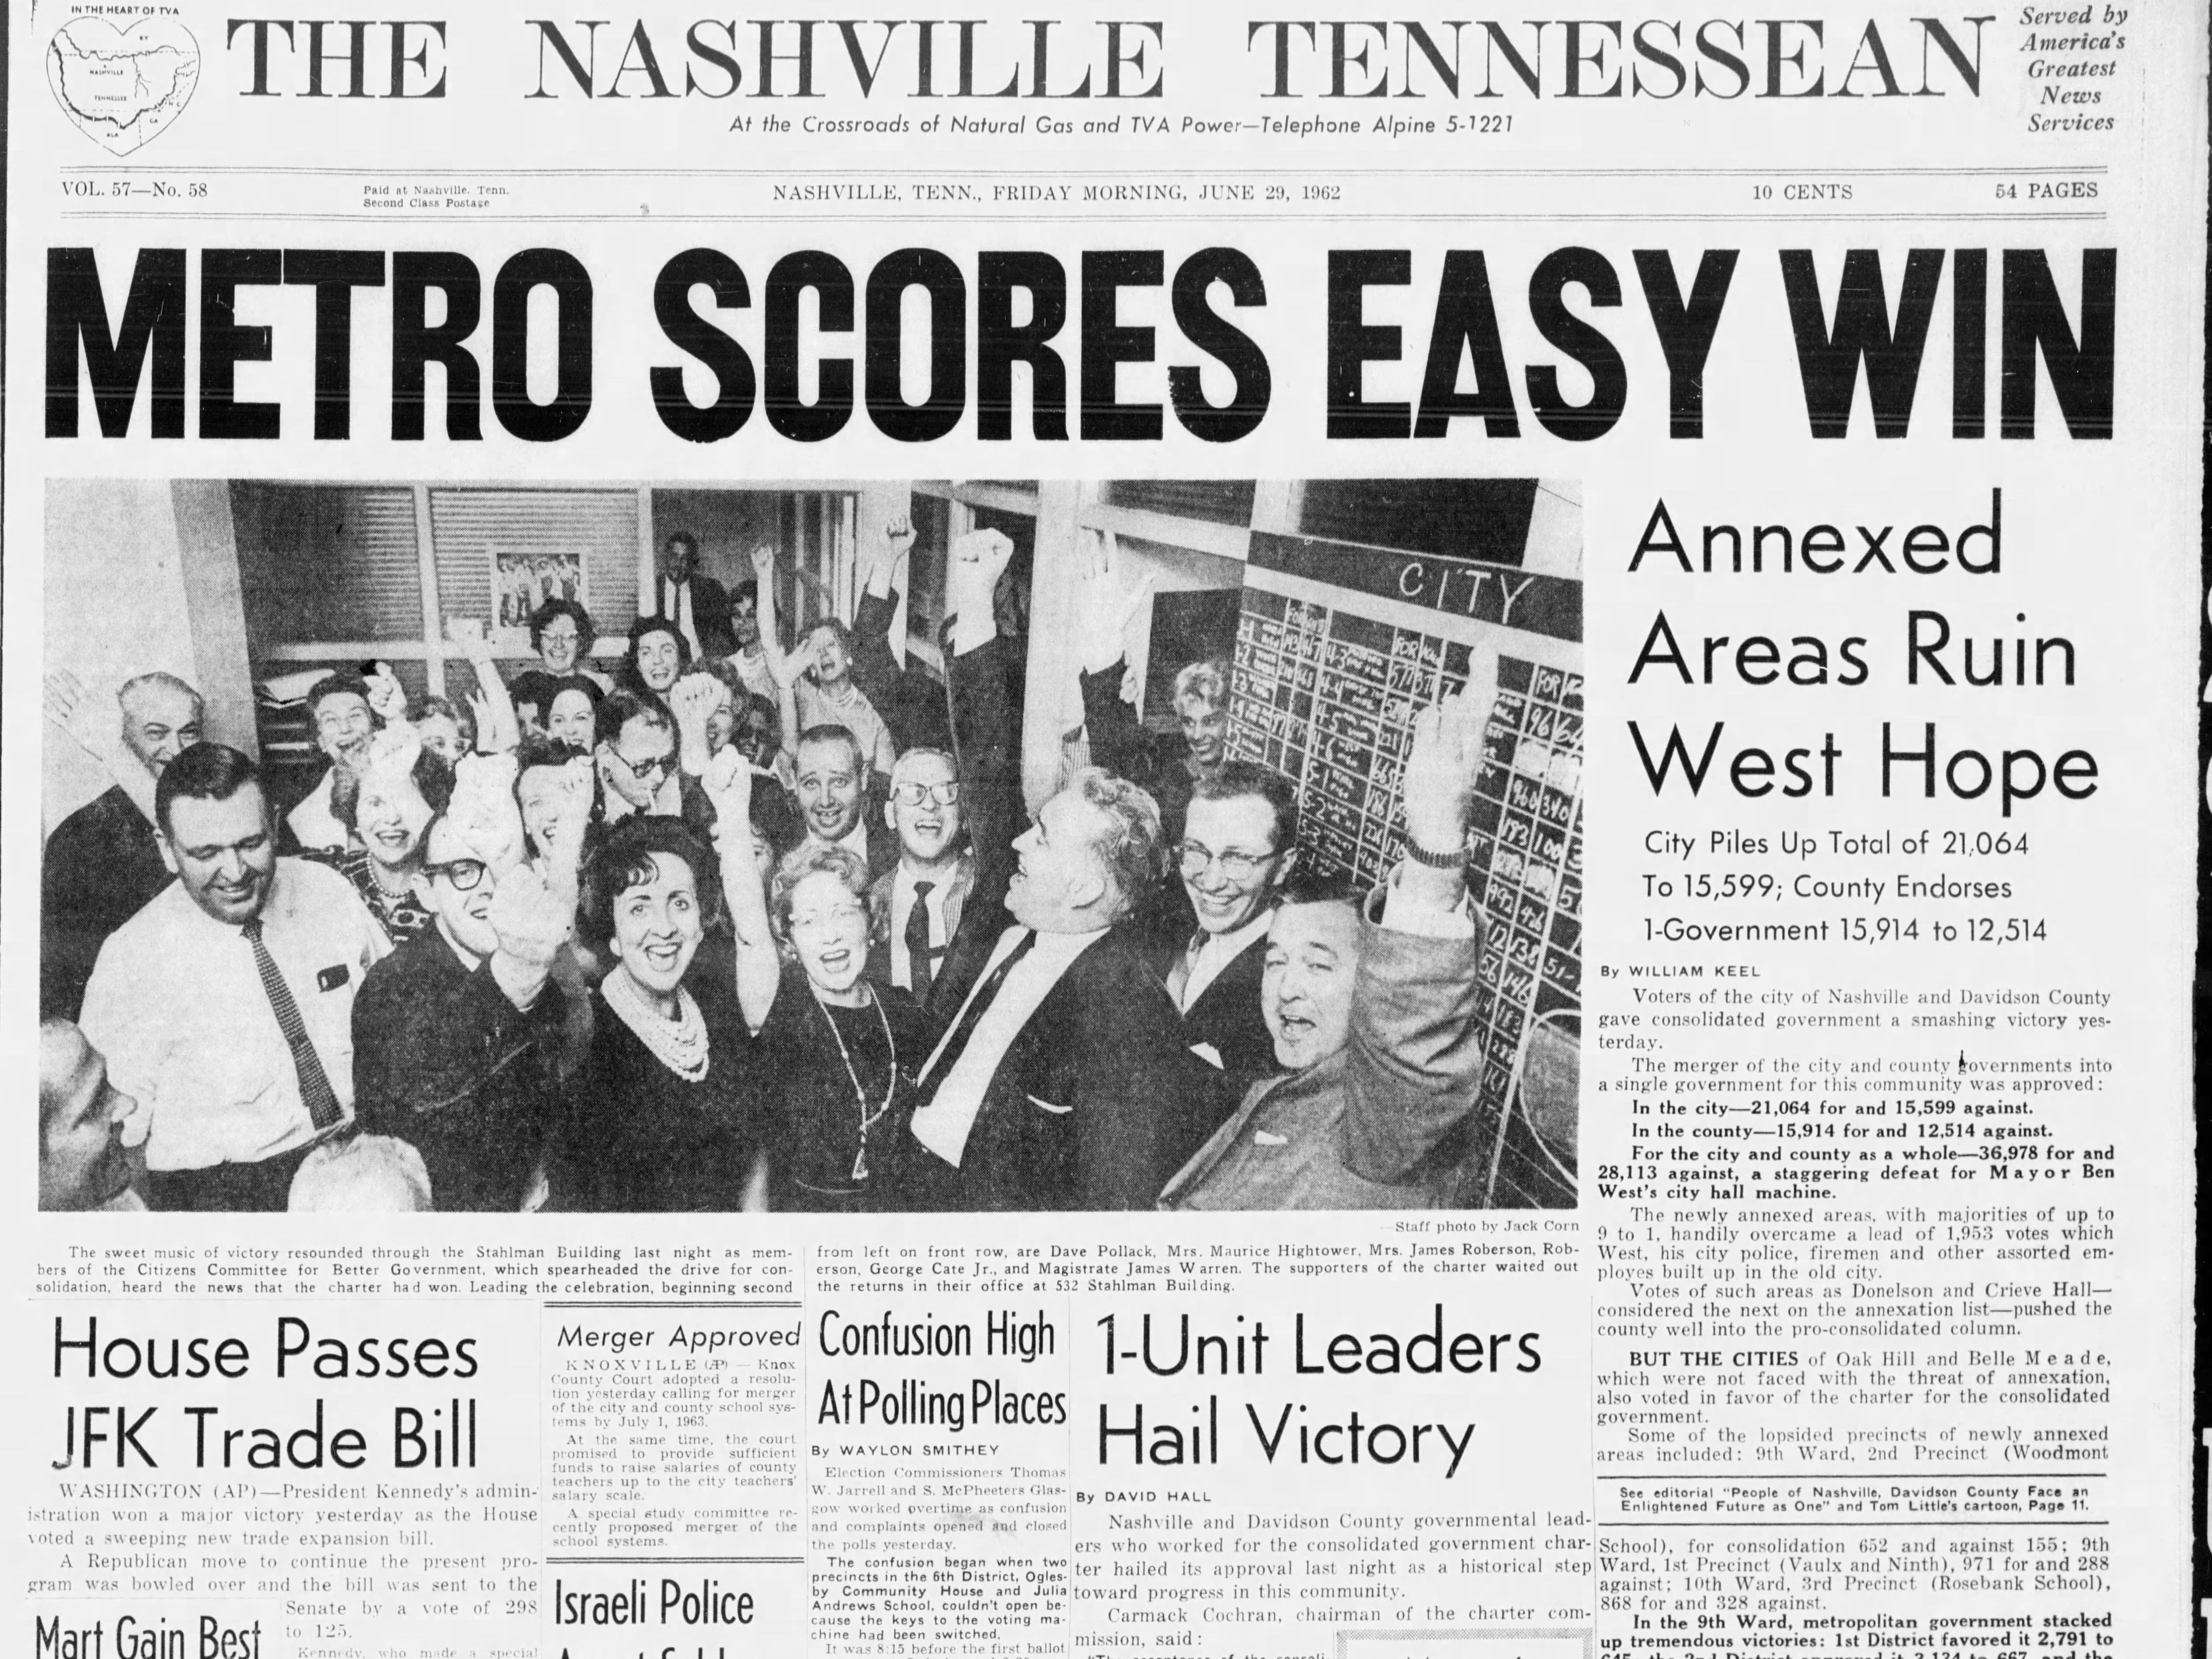 The front page of the June 29, 1962 of The Tennessean for the coverage of the passing of the Metro Government.